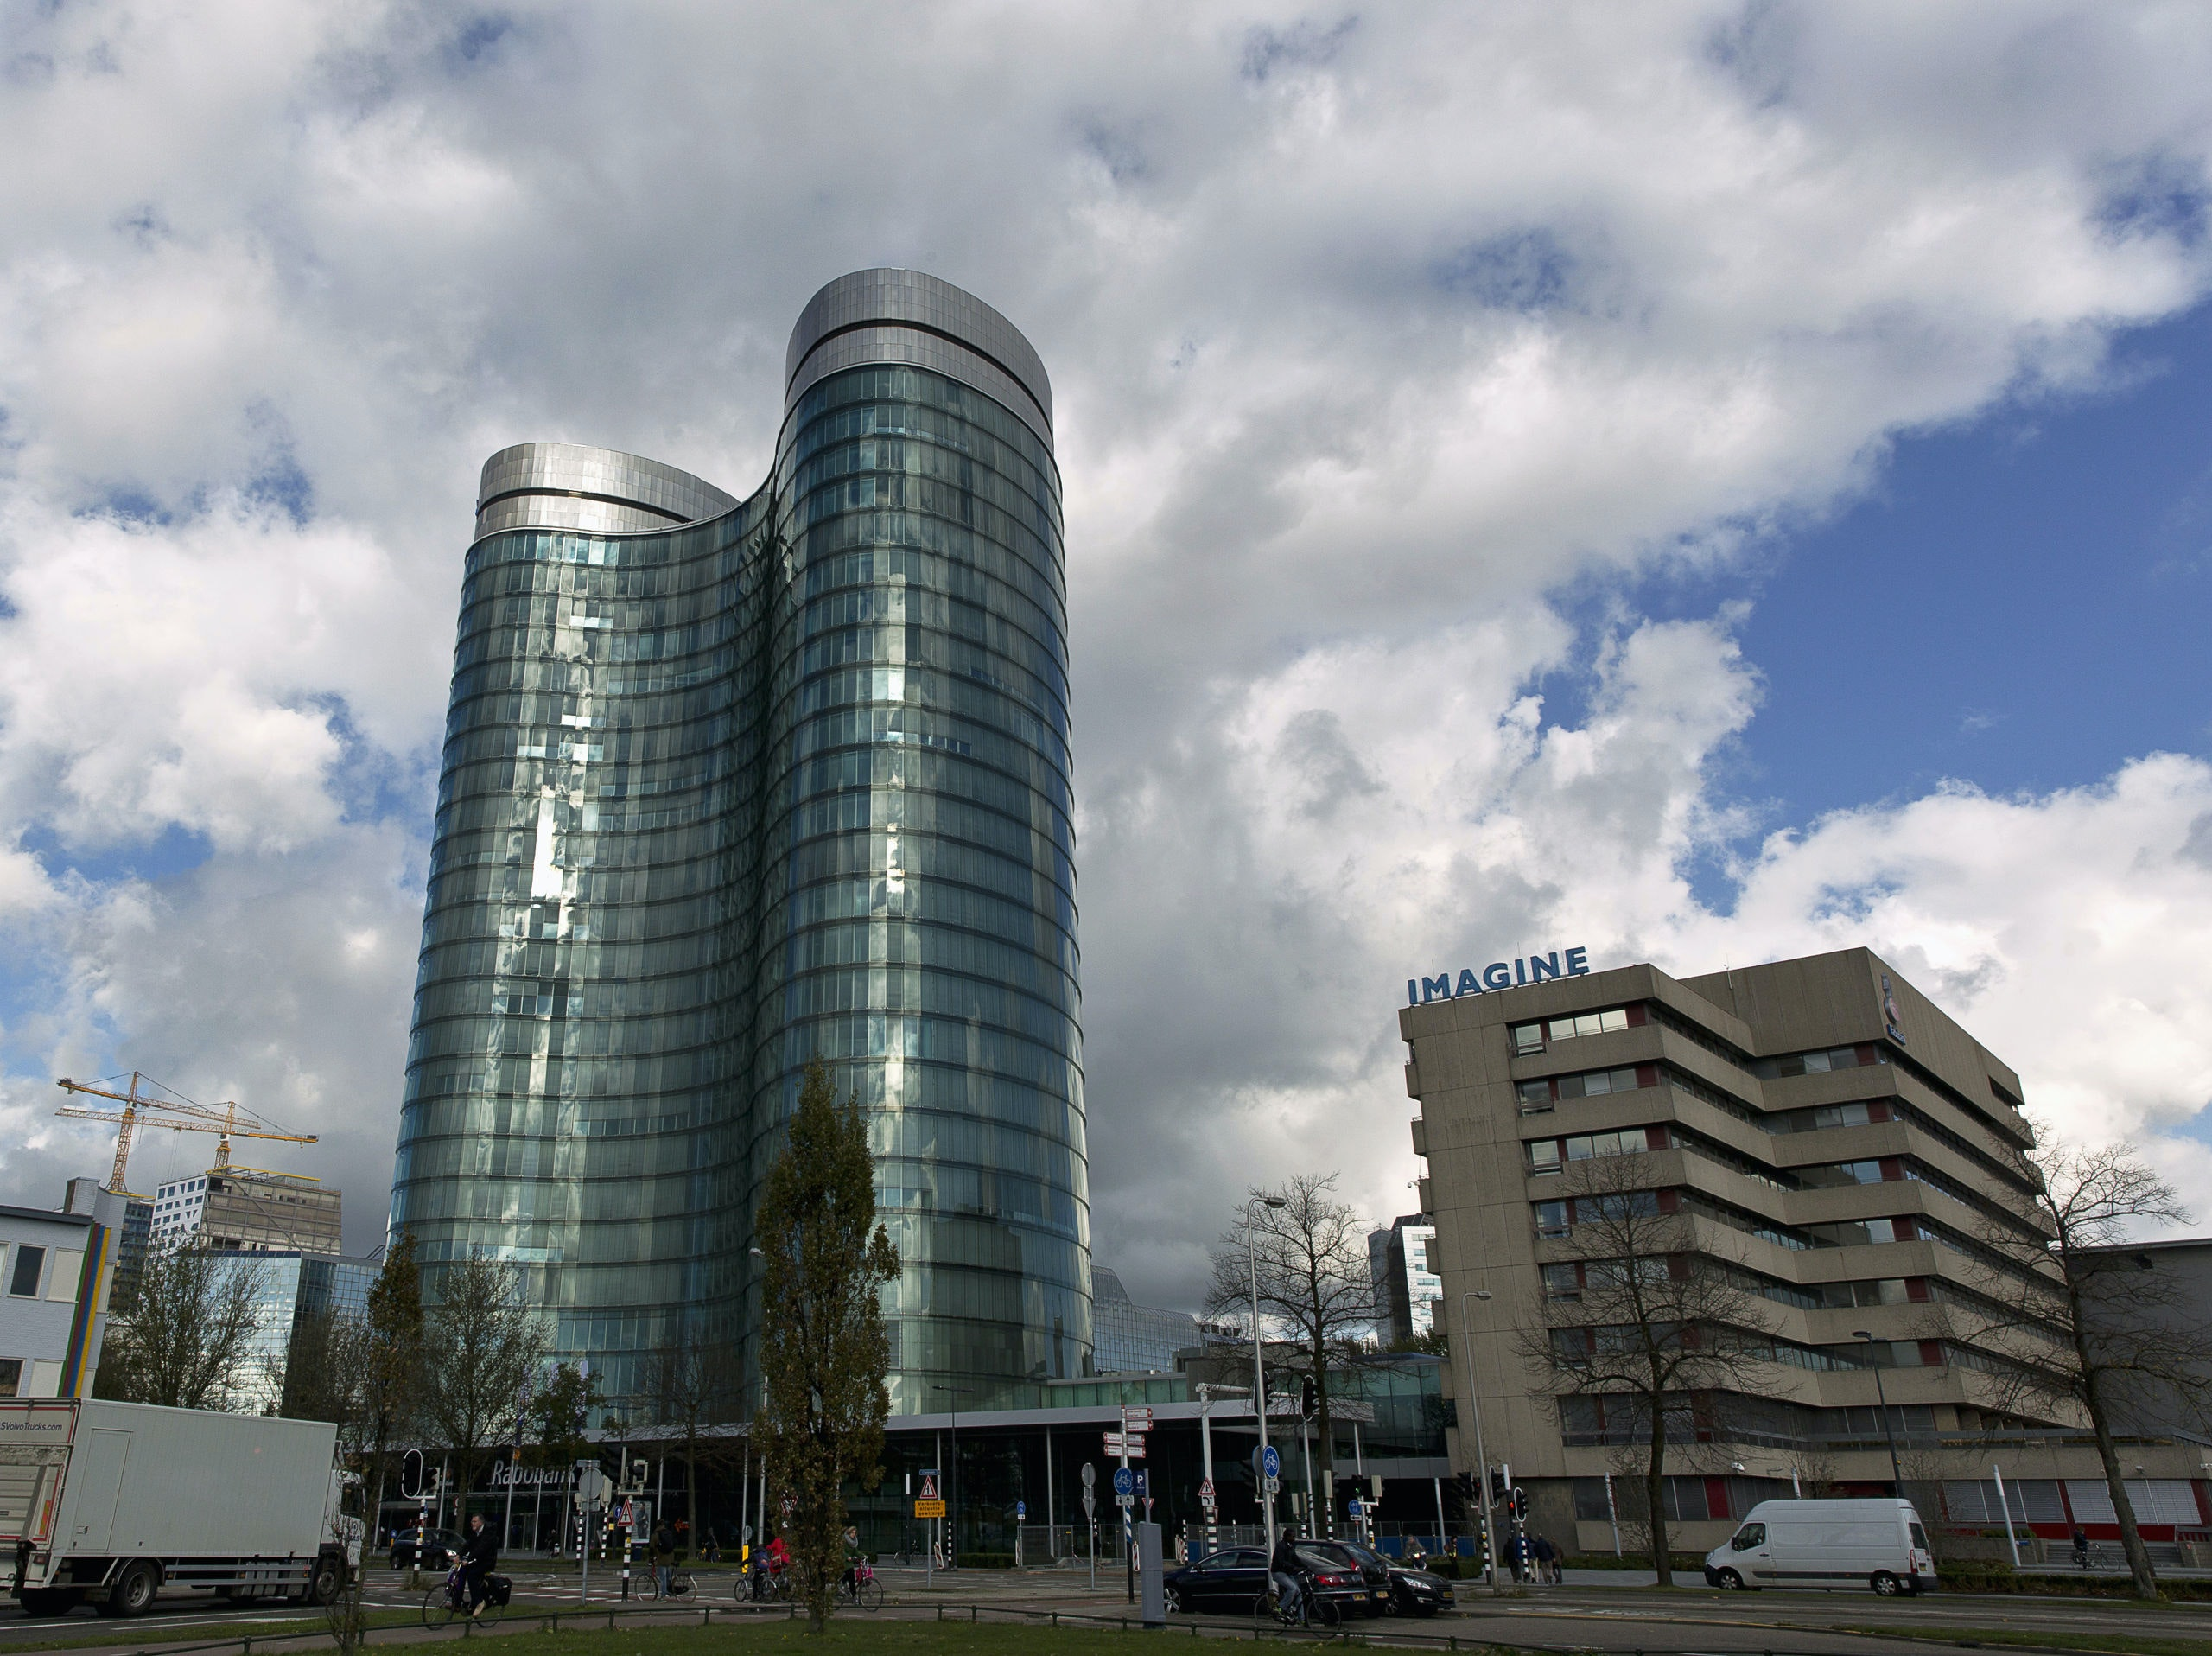 An exterior view of the headquarters of Rabobank in Utrecht October 30, 2013. U.S. and European regulators have fined Dutch lender Rabobank $1 billion for rigging benchmark interest rates, making it the fifth bank punished in a scandal that has helped to shred faith in the industry. REUTERS/Michael Kooren (NETHERLANDS - Tags: BUSINESS) - GM1E9AU1M2D01